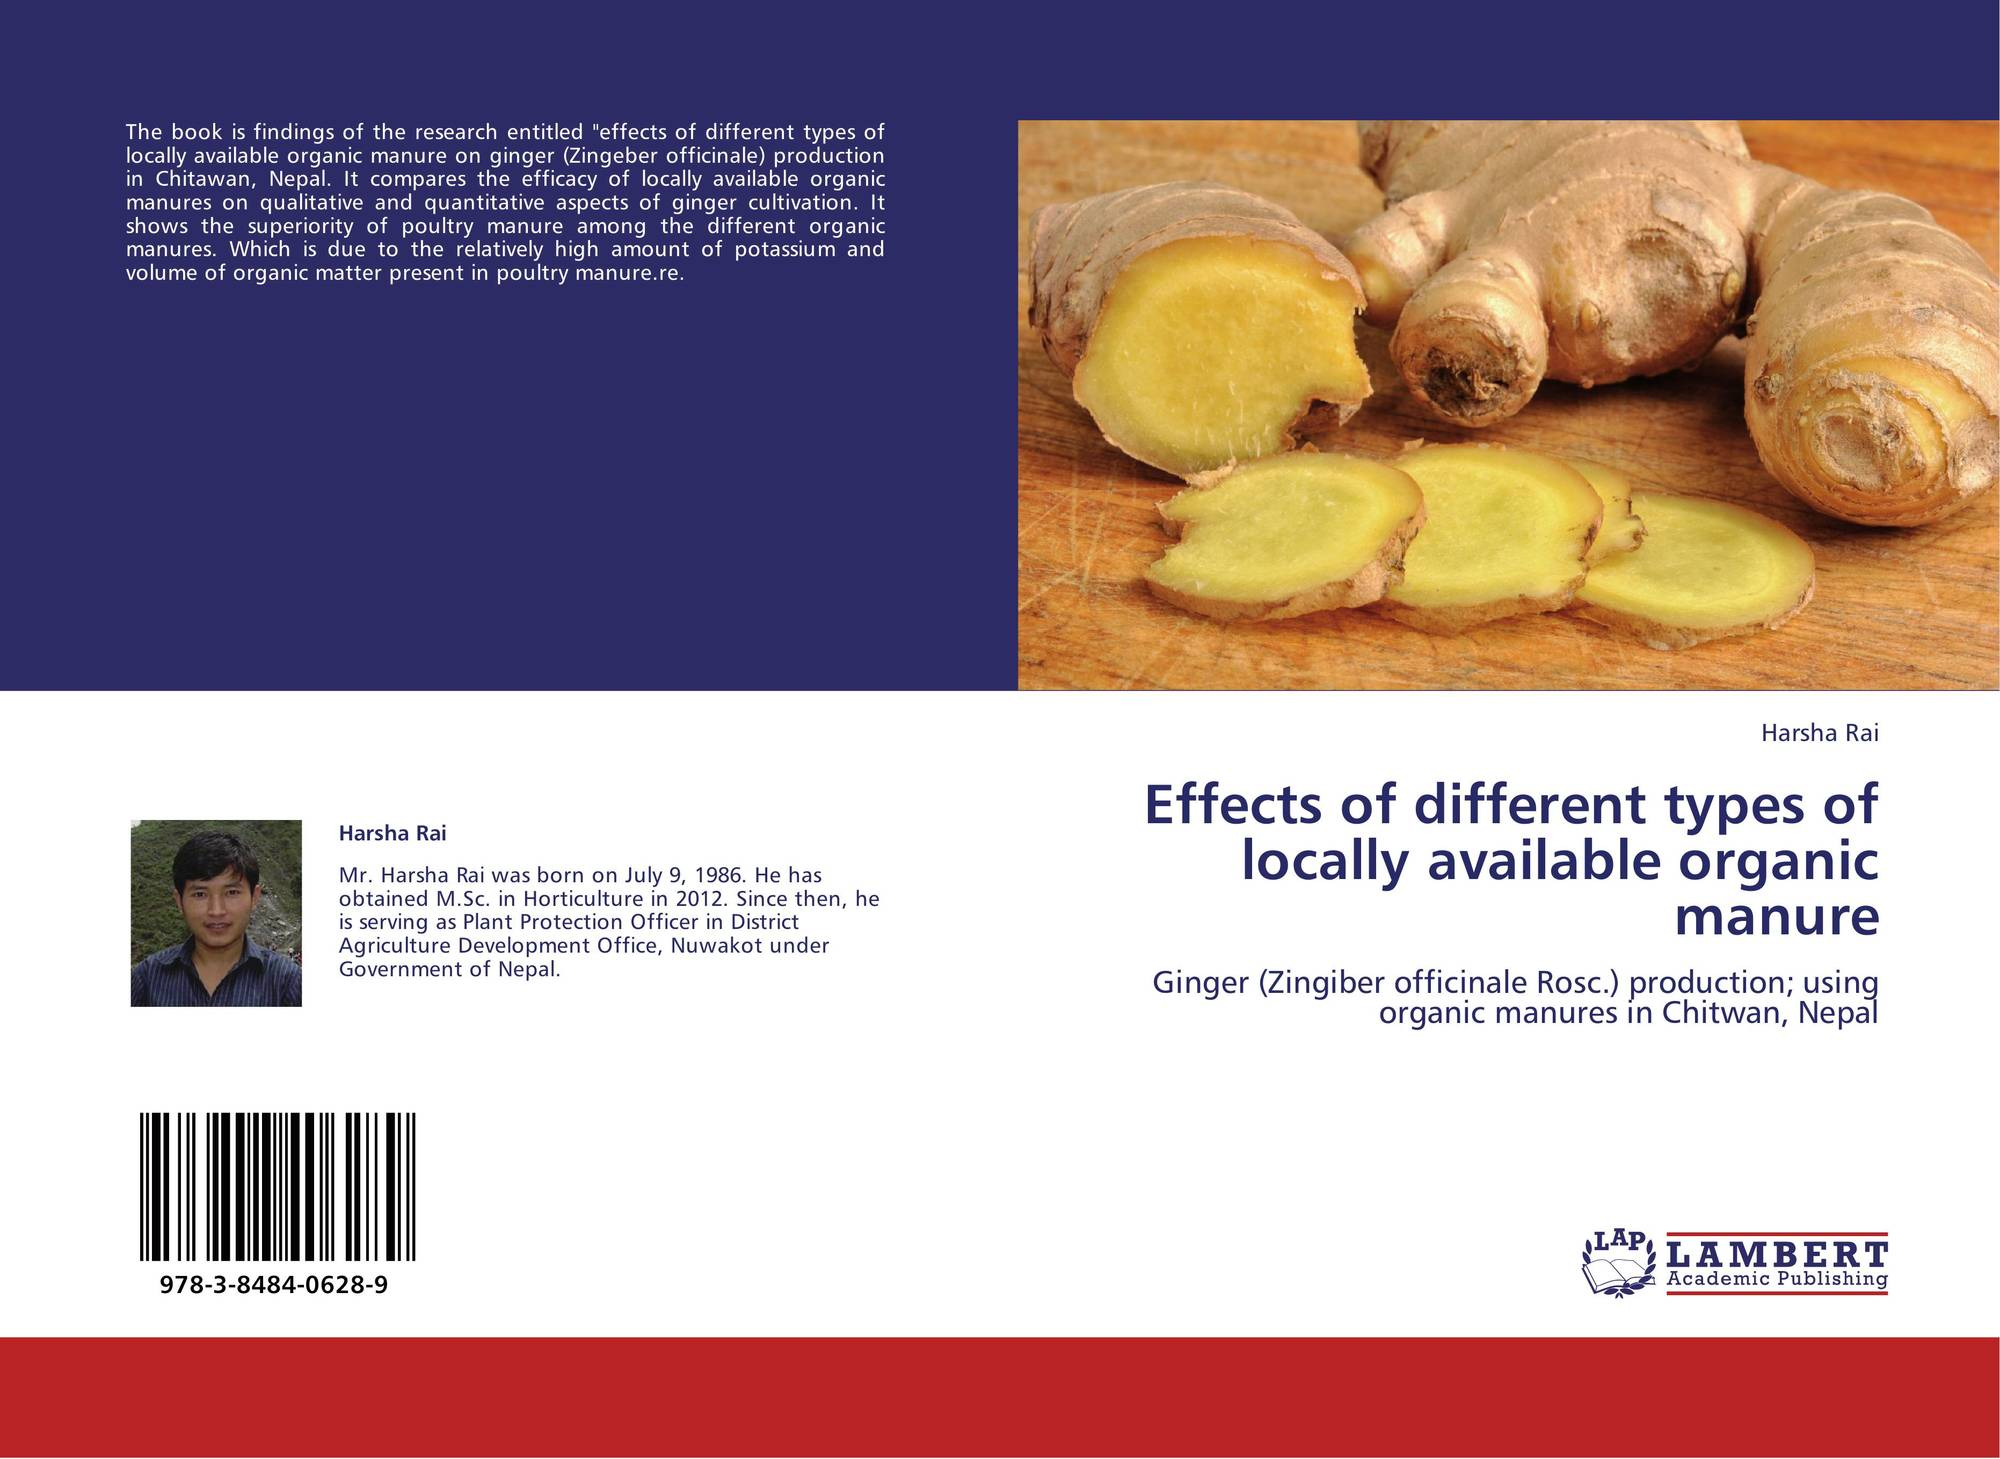 Effects of different types of locally available organic